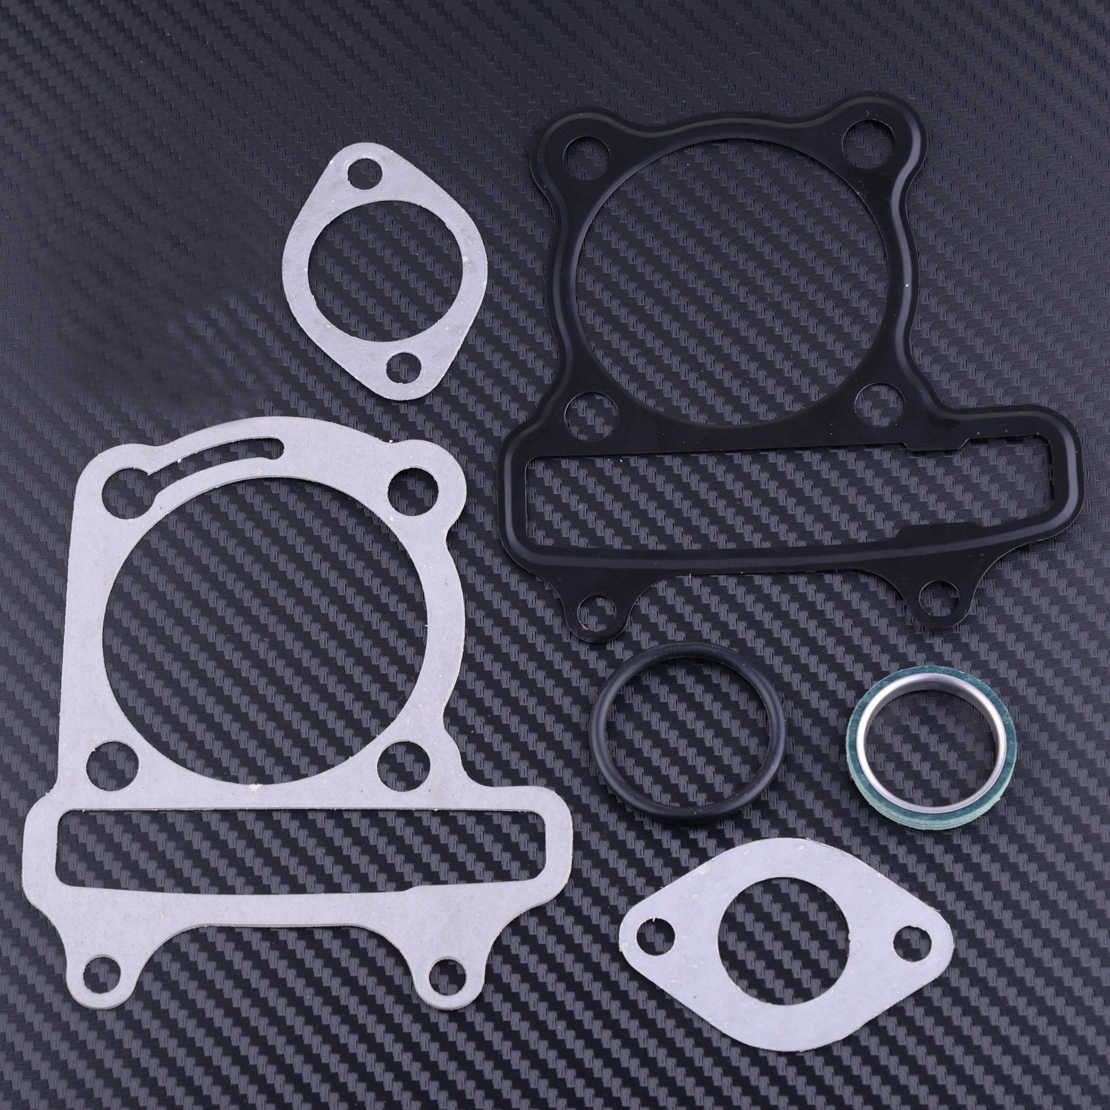 CITALL Motorcycle 6pcs Gasket Set Replacement Fit for Chinese GY6 Go-kart ATV Scooter Moped with 150cc 57.5-58.5 mm Cylinder